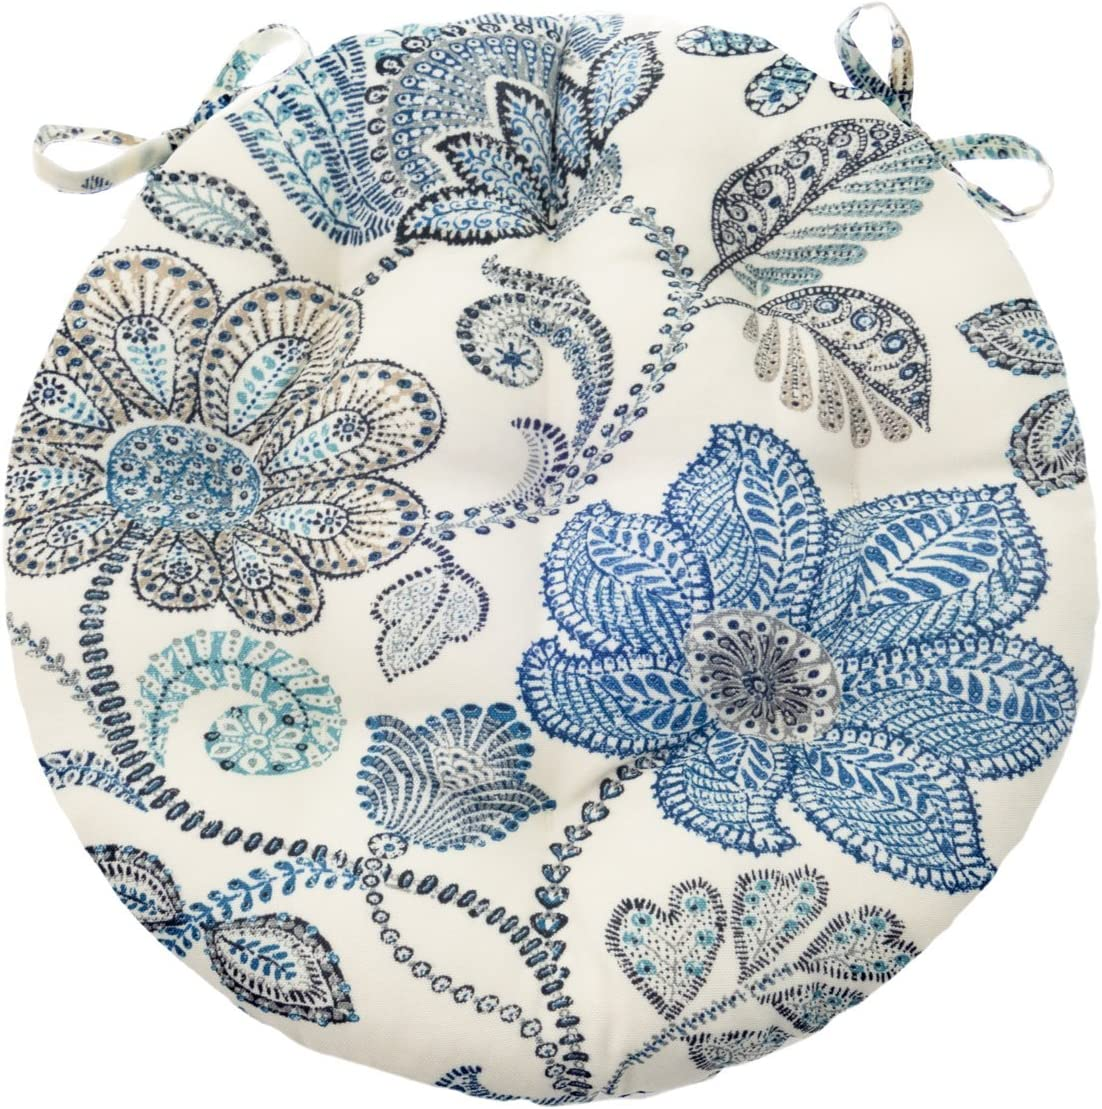 Barnett Home Decor 16 Round Bistro Cushion – Boutique Floral – Indoor Outdoor Fade Resistant, Mildew Resistant, Stain Resistant – Latex Foam Fill Blue White